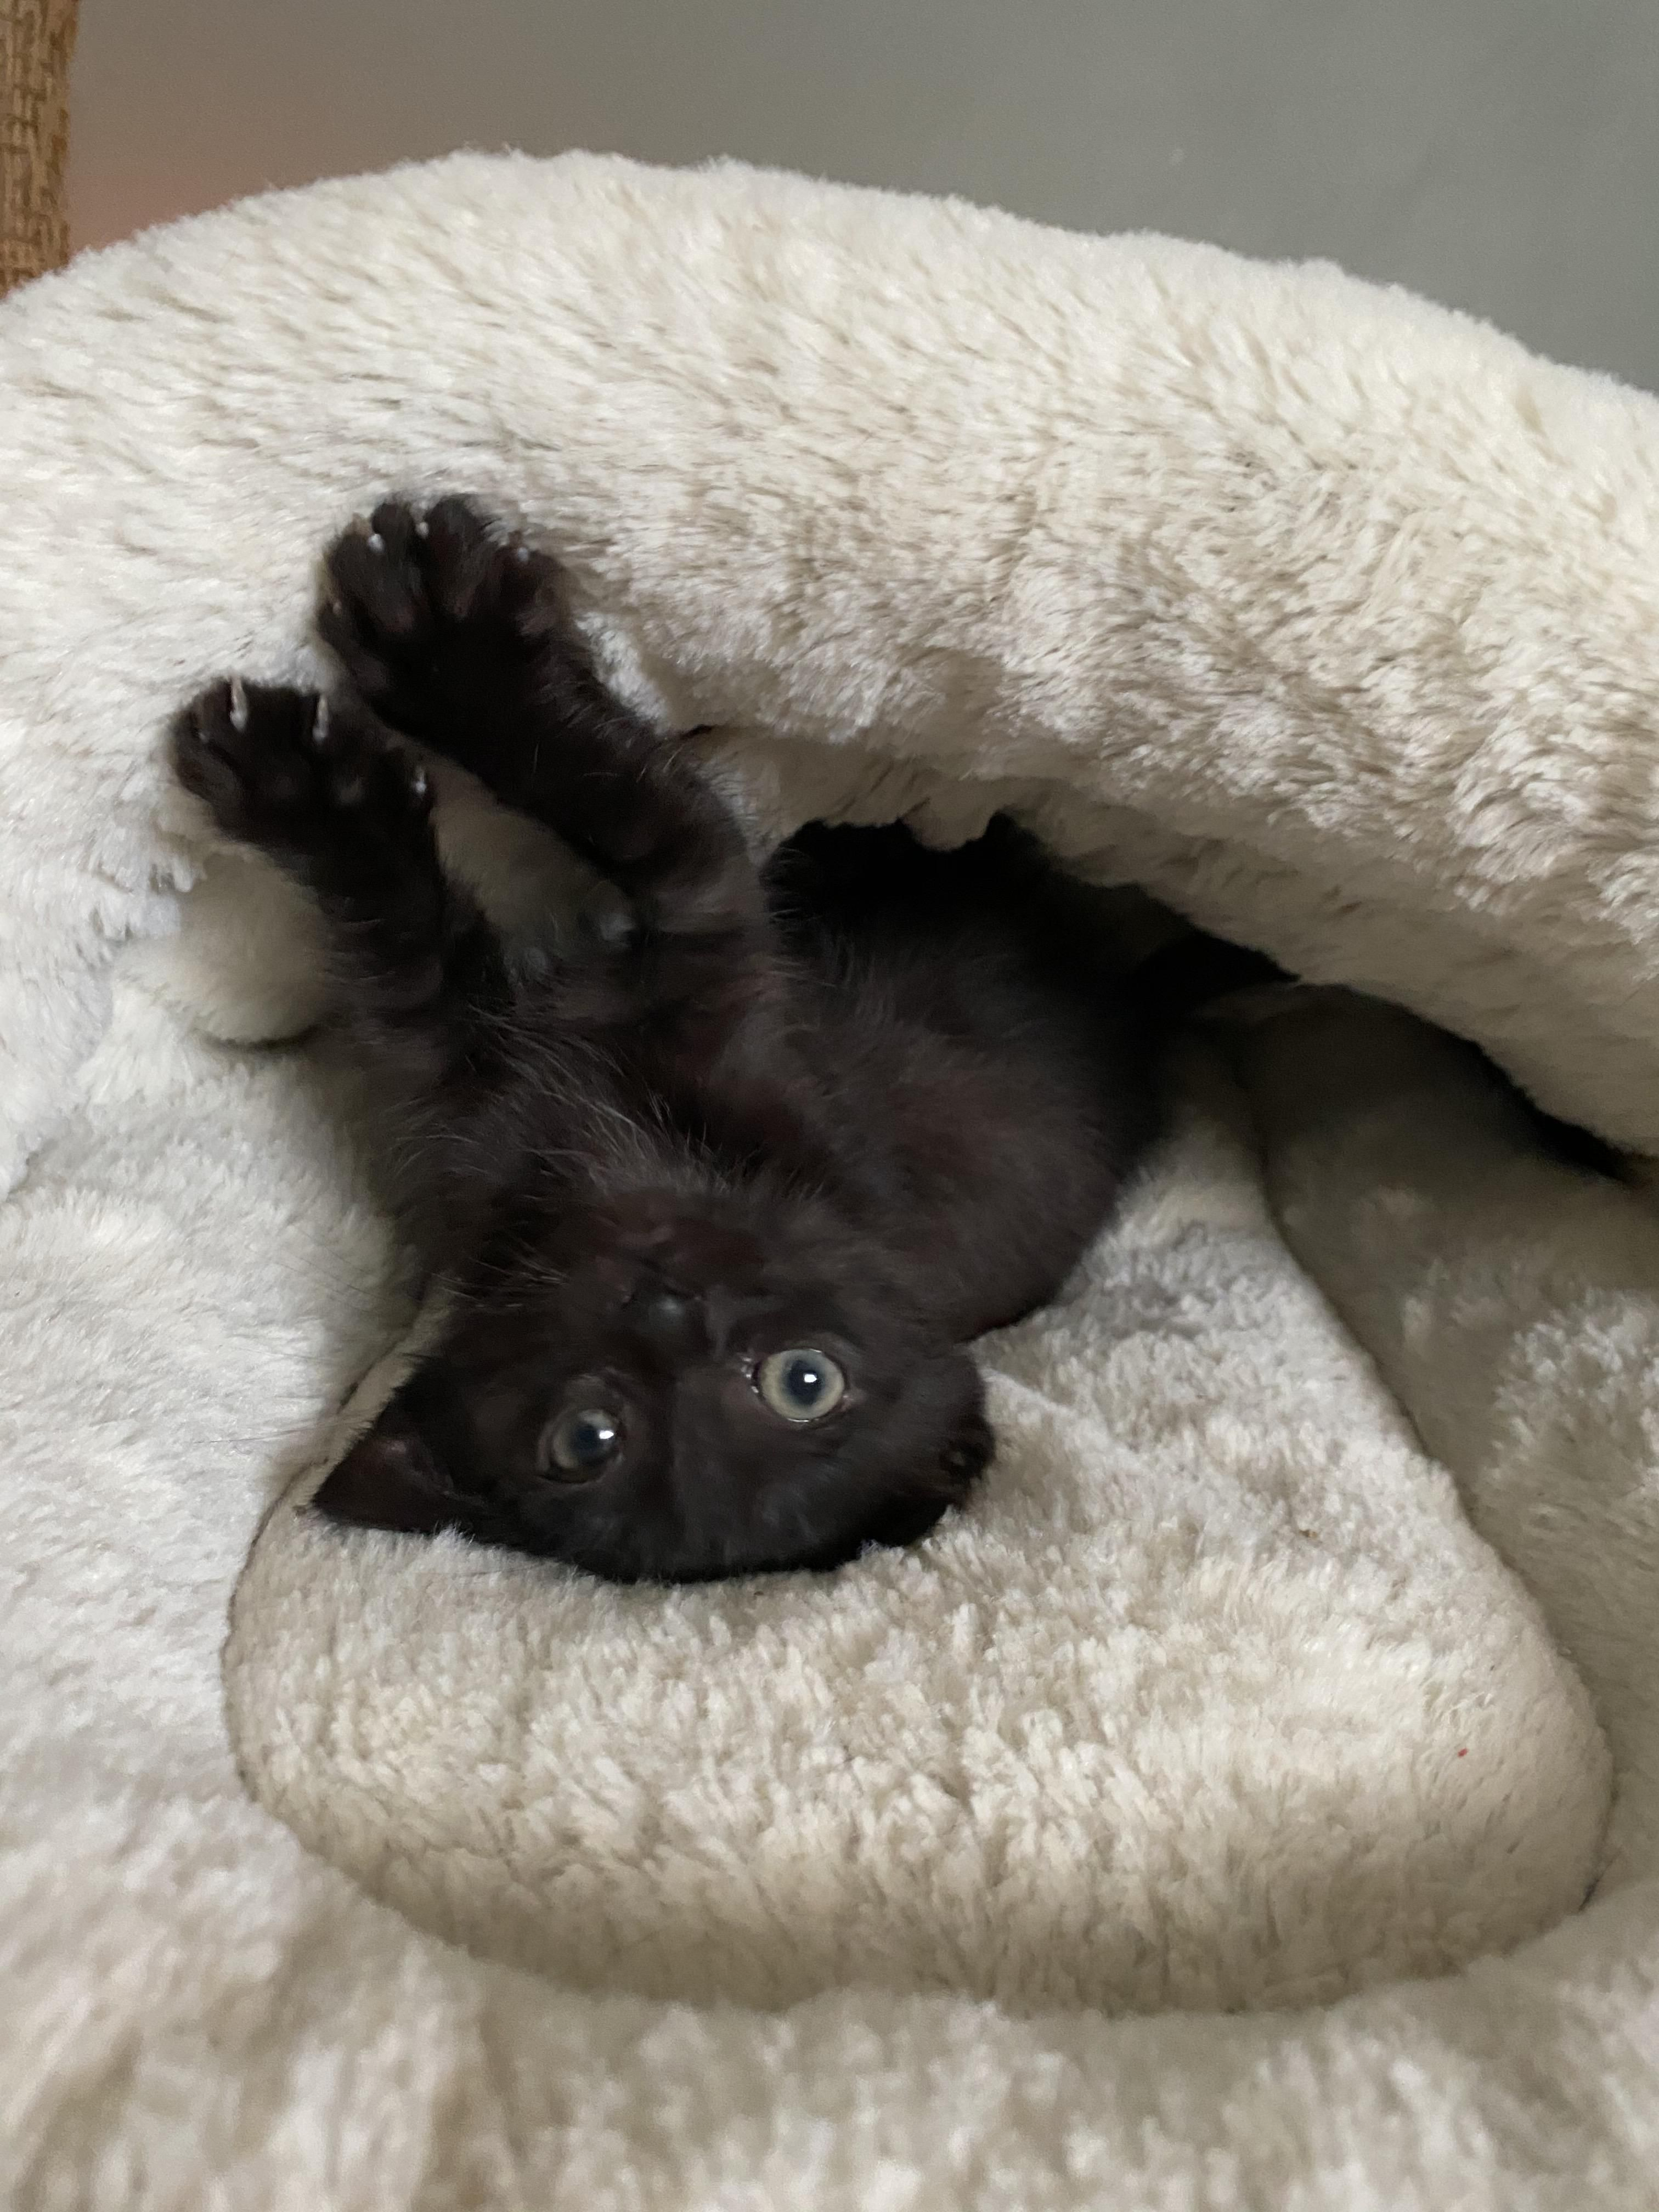 Just As I Was Preparing Tearfully To Give My Black Foster Kitten And Her Mama Back To The Shelter To Be Adopted Someone Brought Me Another Little Black Cat T In 2020